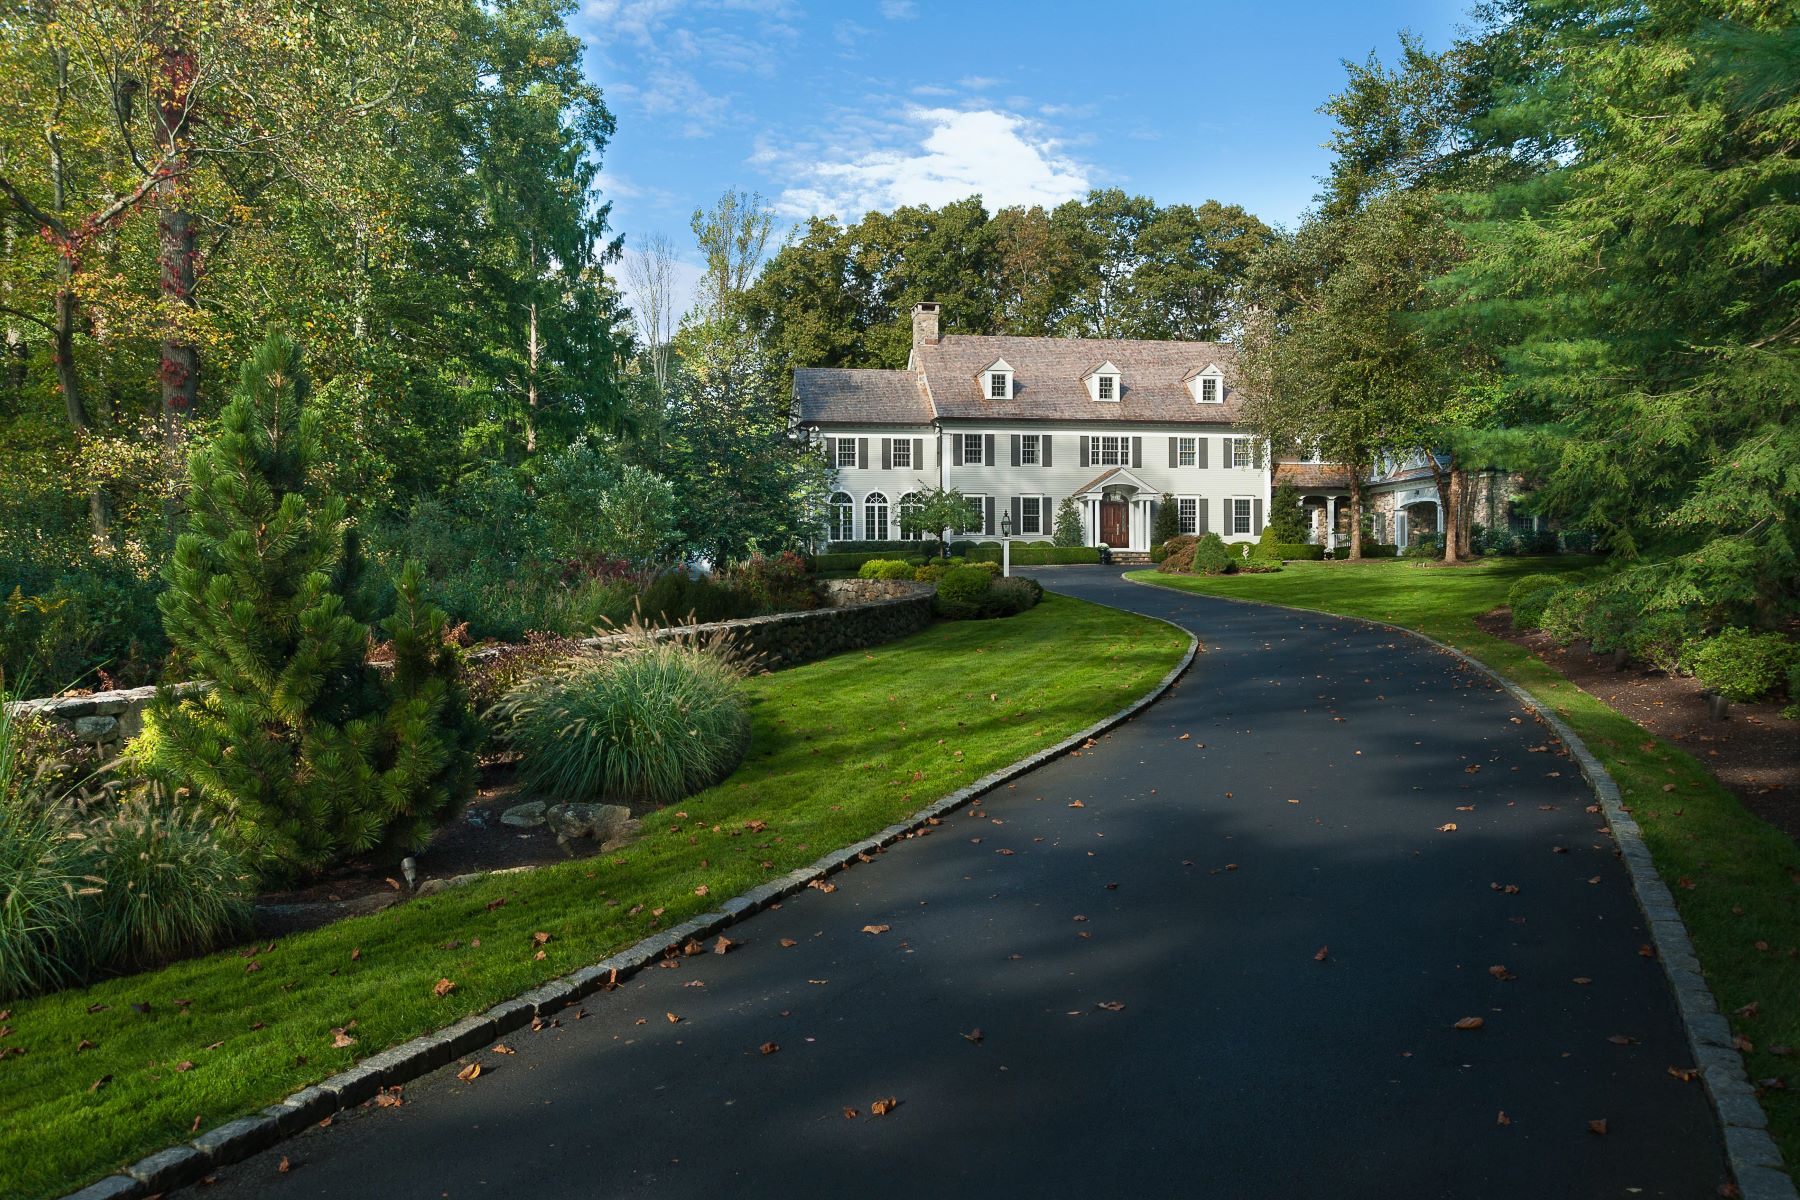 Maison unifamiliale pour l Vente à Stately Home and Grounds in West Road Enclave 709 West Road New Canaan, Connecticut 06840 États-Unis